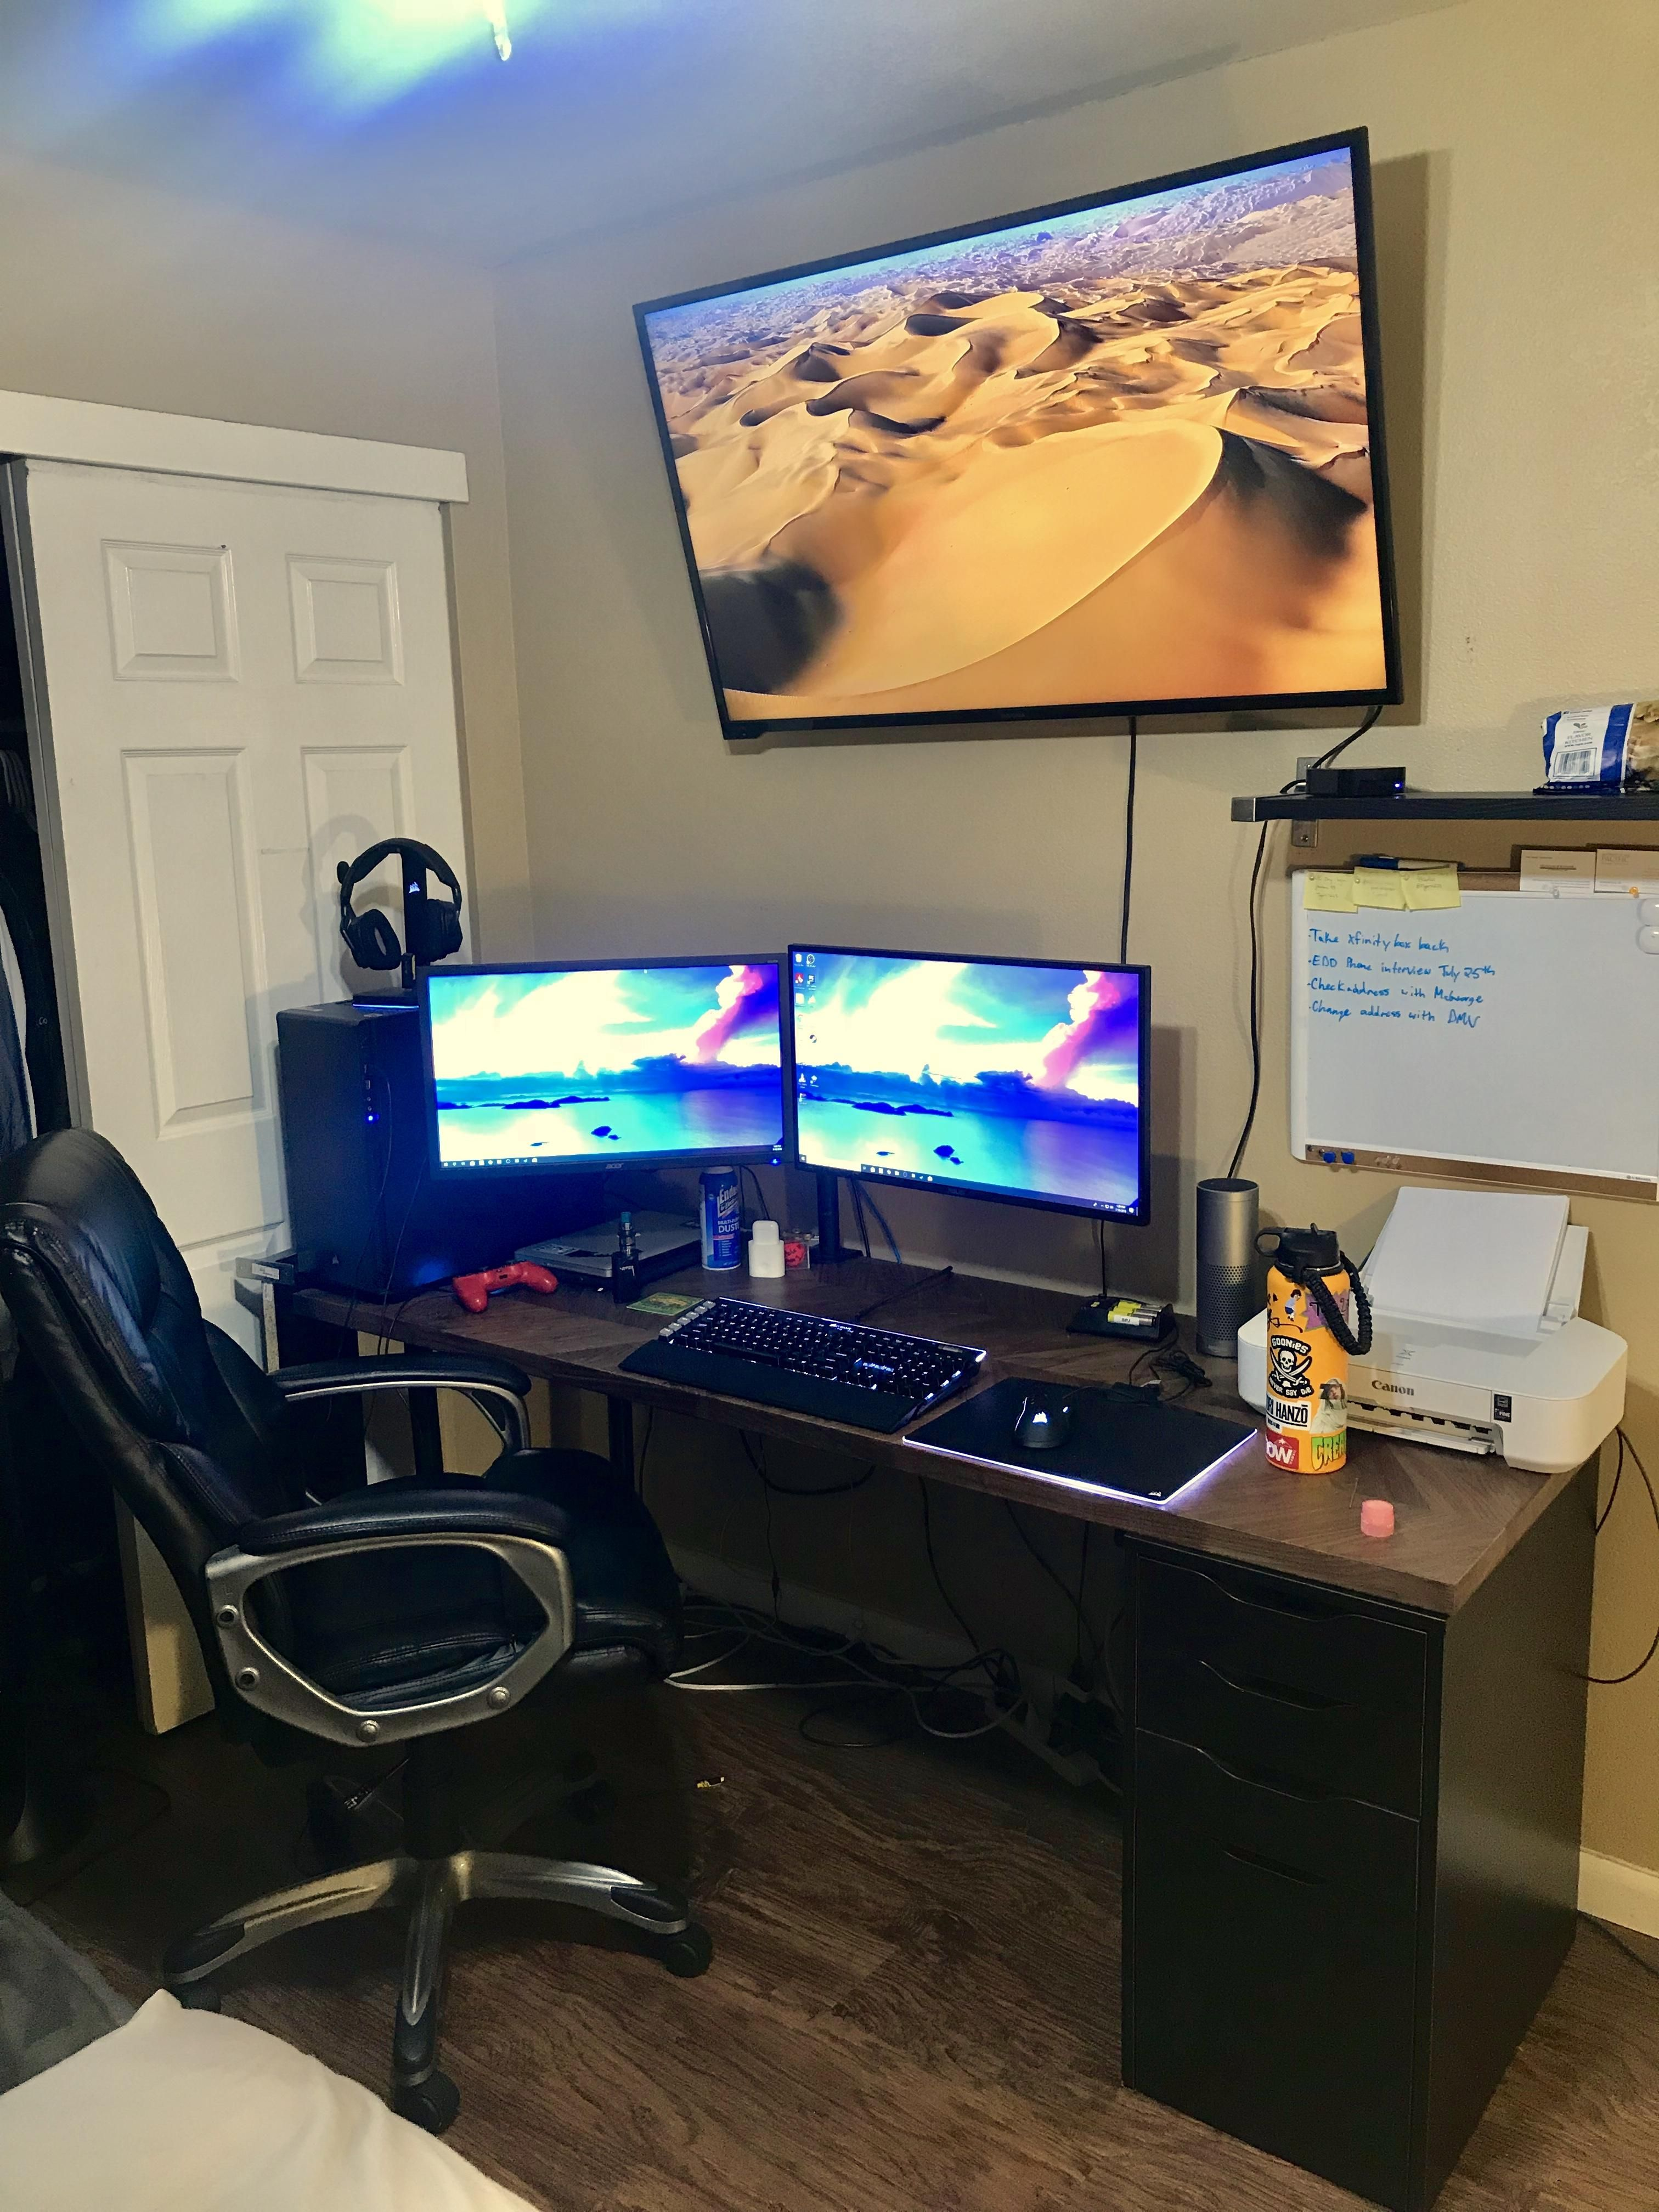 New House New Desk New Monitor New Tv Setup Is Looking Better Next Step Cable Management Gaming Desk Setup Game Room Setup